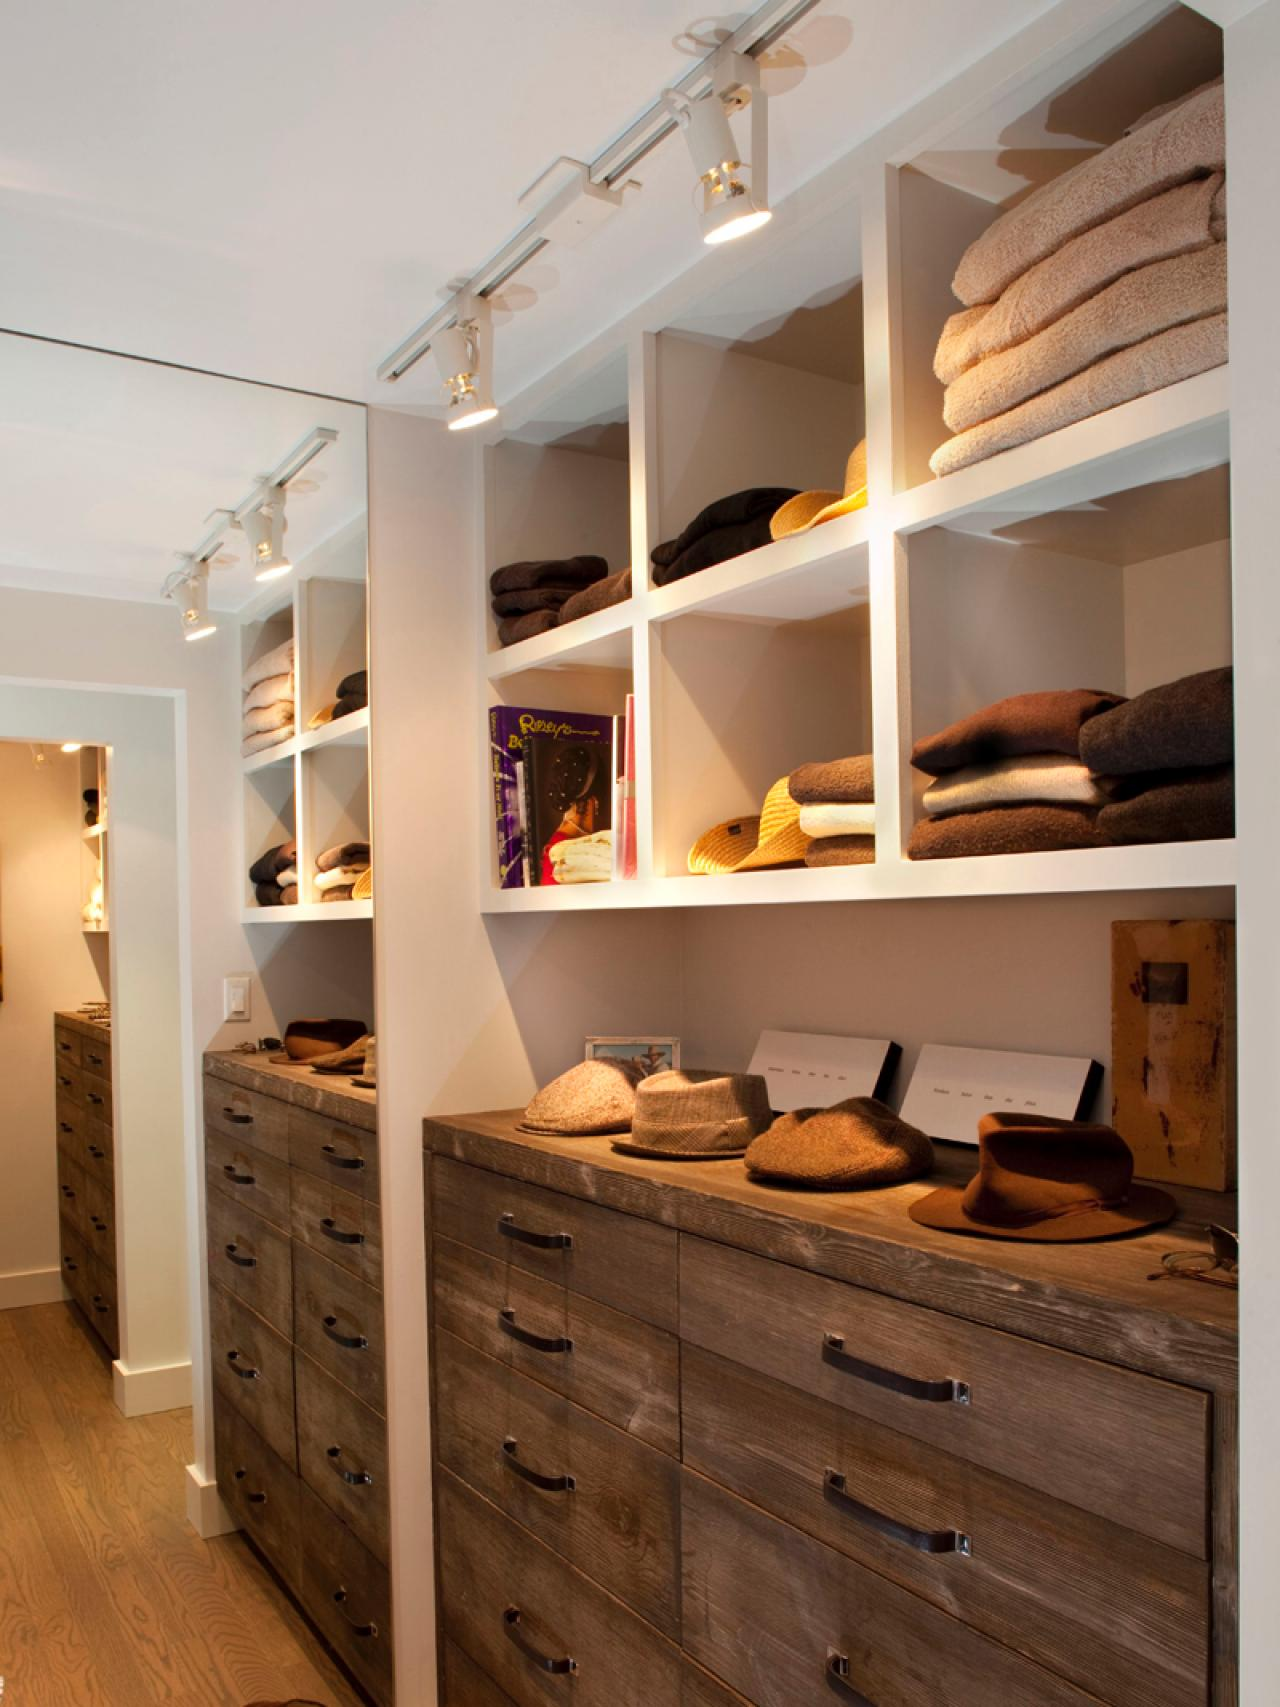 hall-closet-organization-and-design-ideas-home-remodeling-layer-in-lighting_closet-inside-design_interior-design_scandinavian-interior-design-designer-job-description-magazine-famous-designers-degree